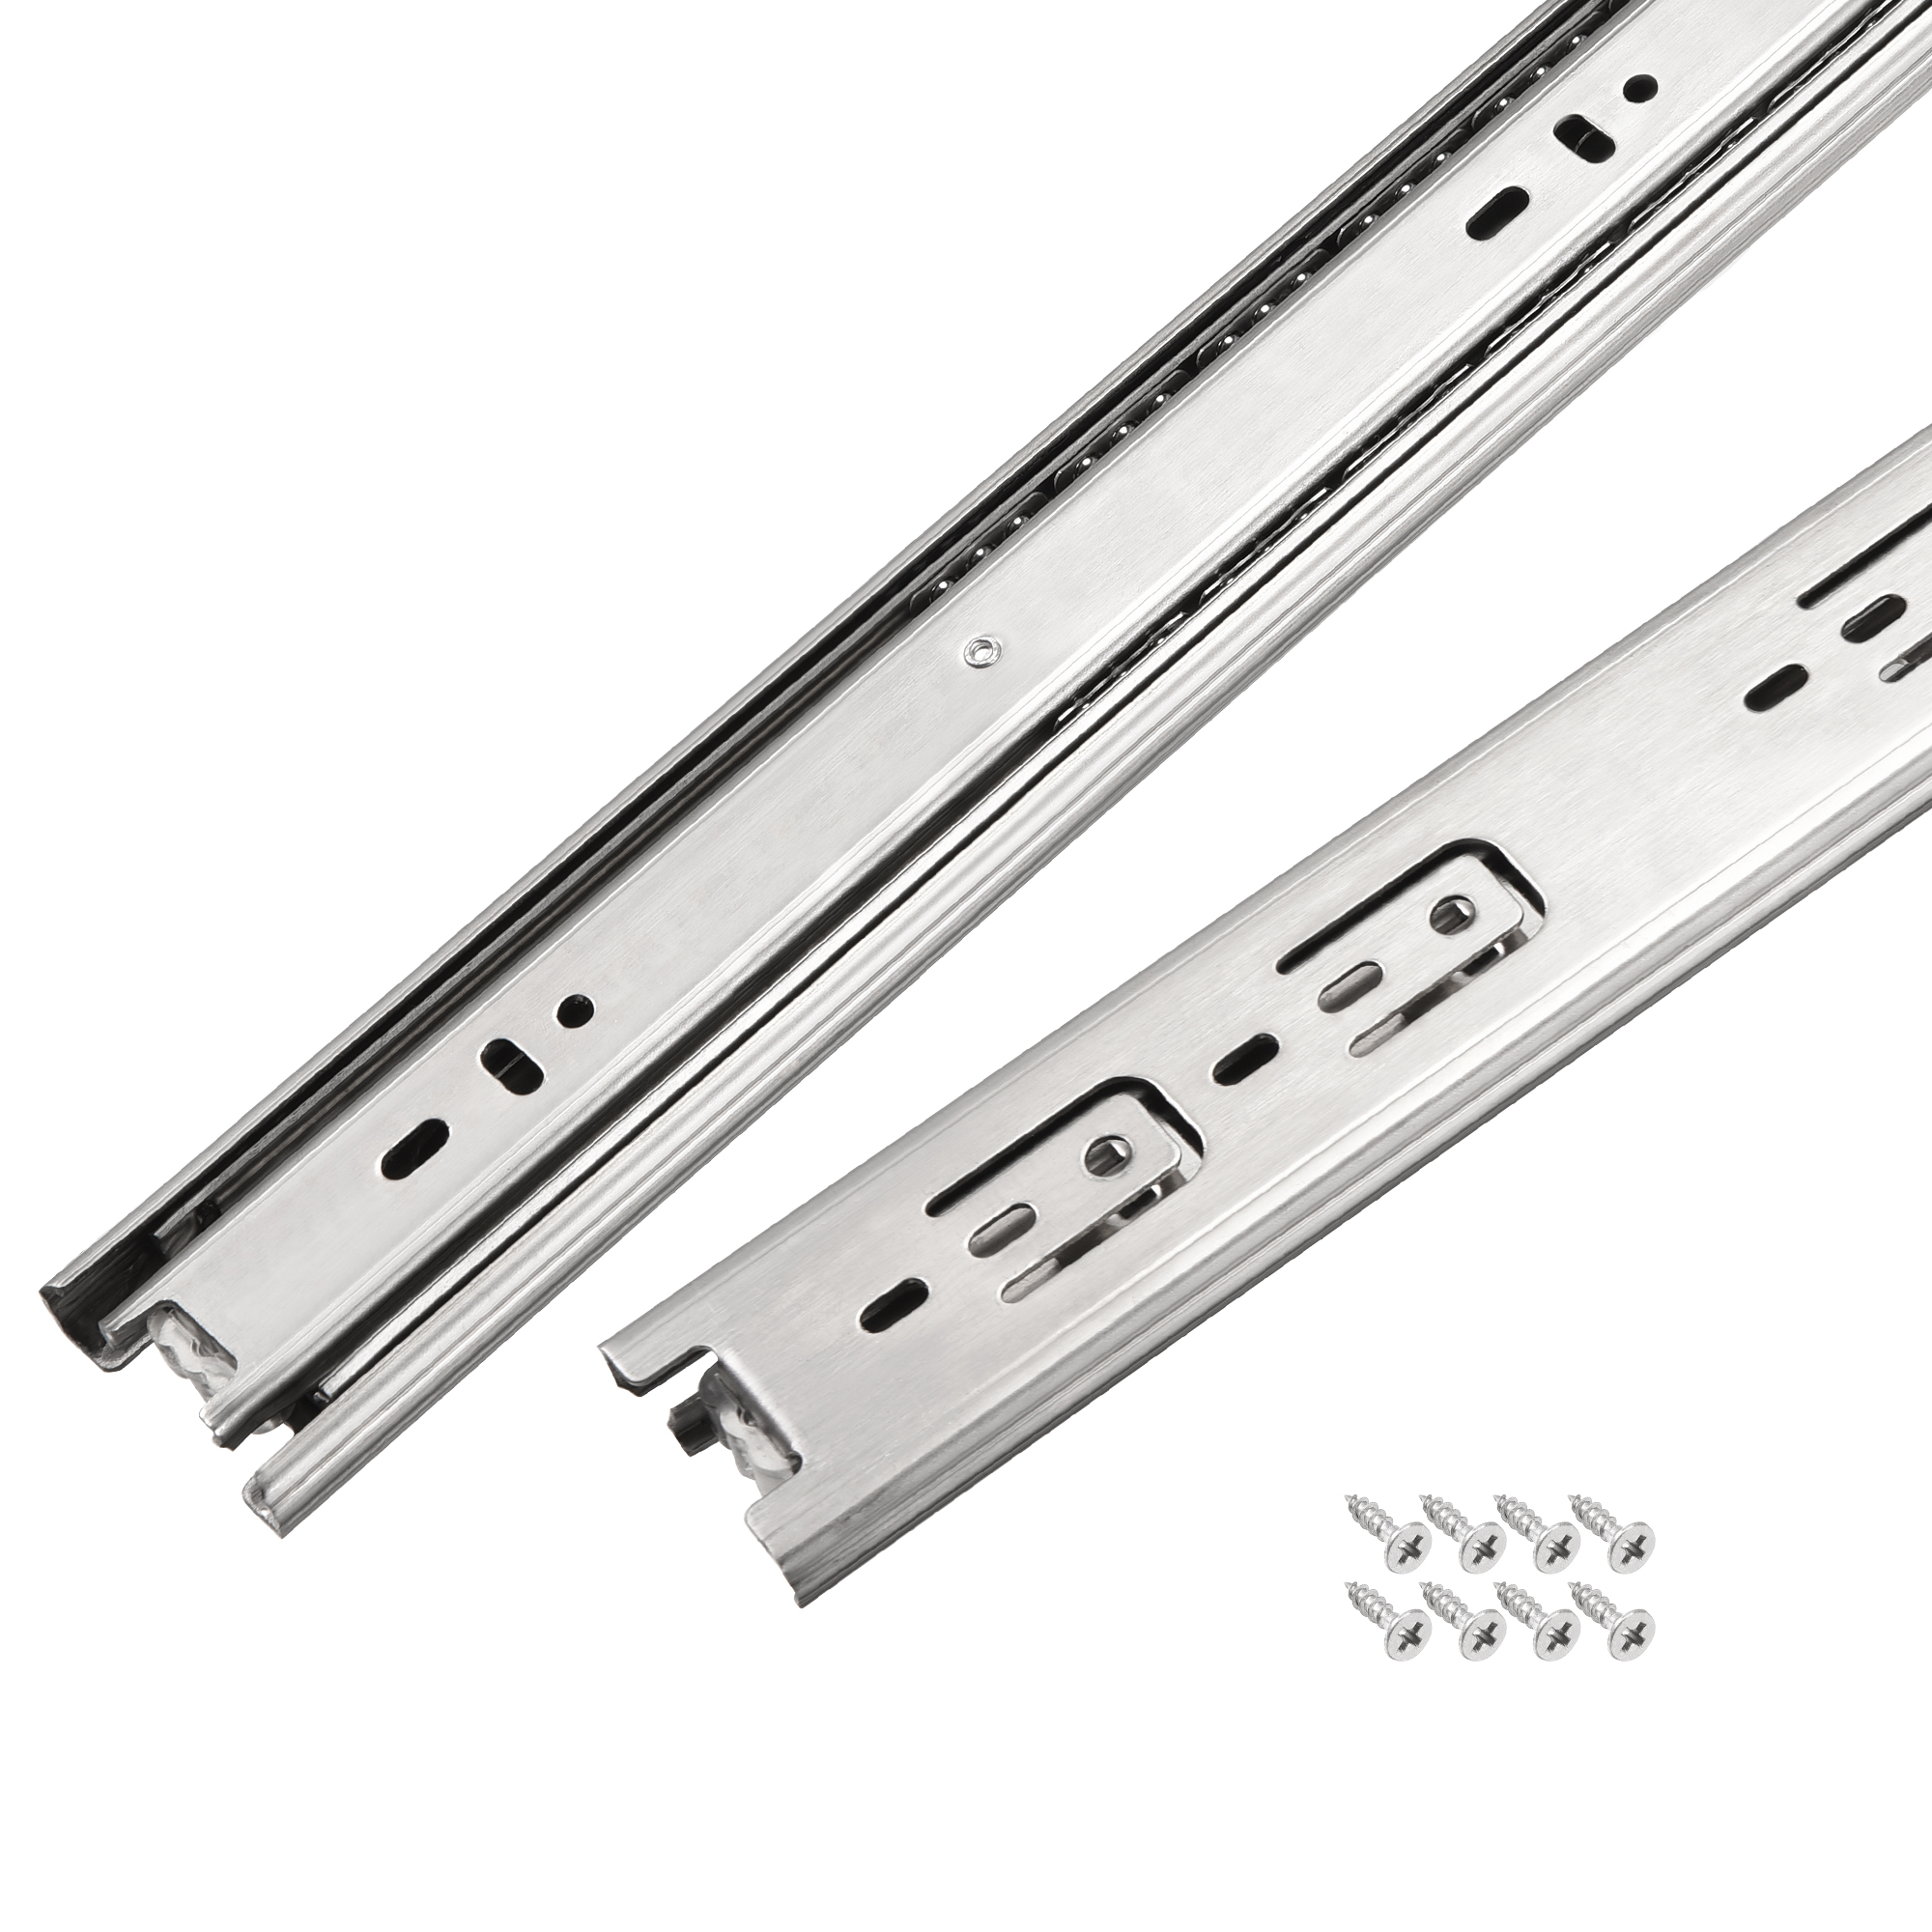 17.7Inch Drawer Slides Ball Bearing Track Rail 45mm Wide 3 Sections 1 Pair